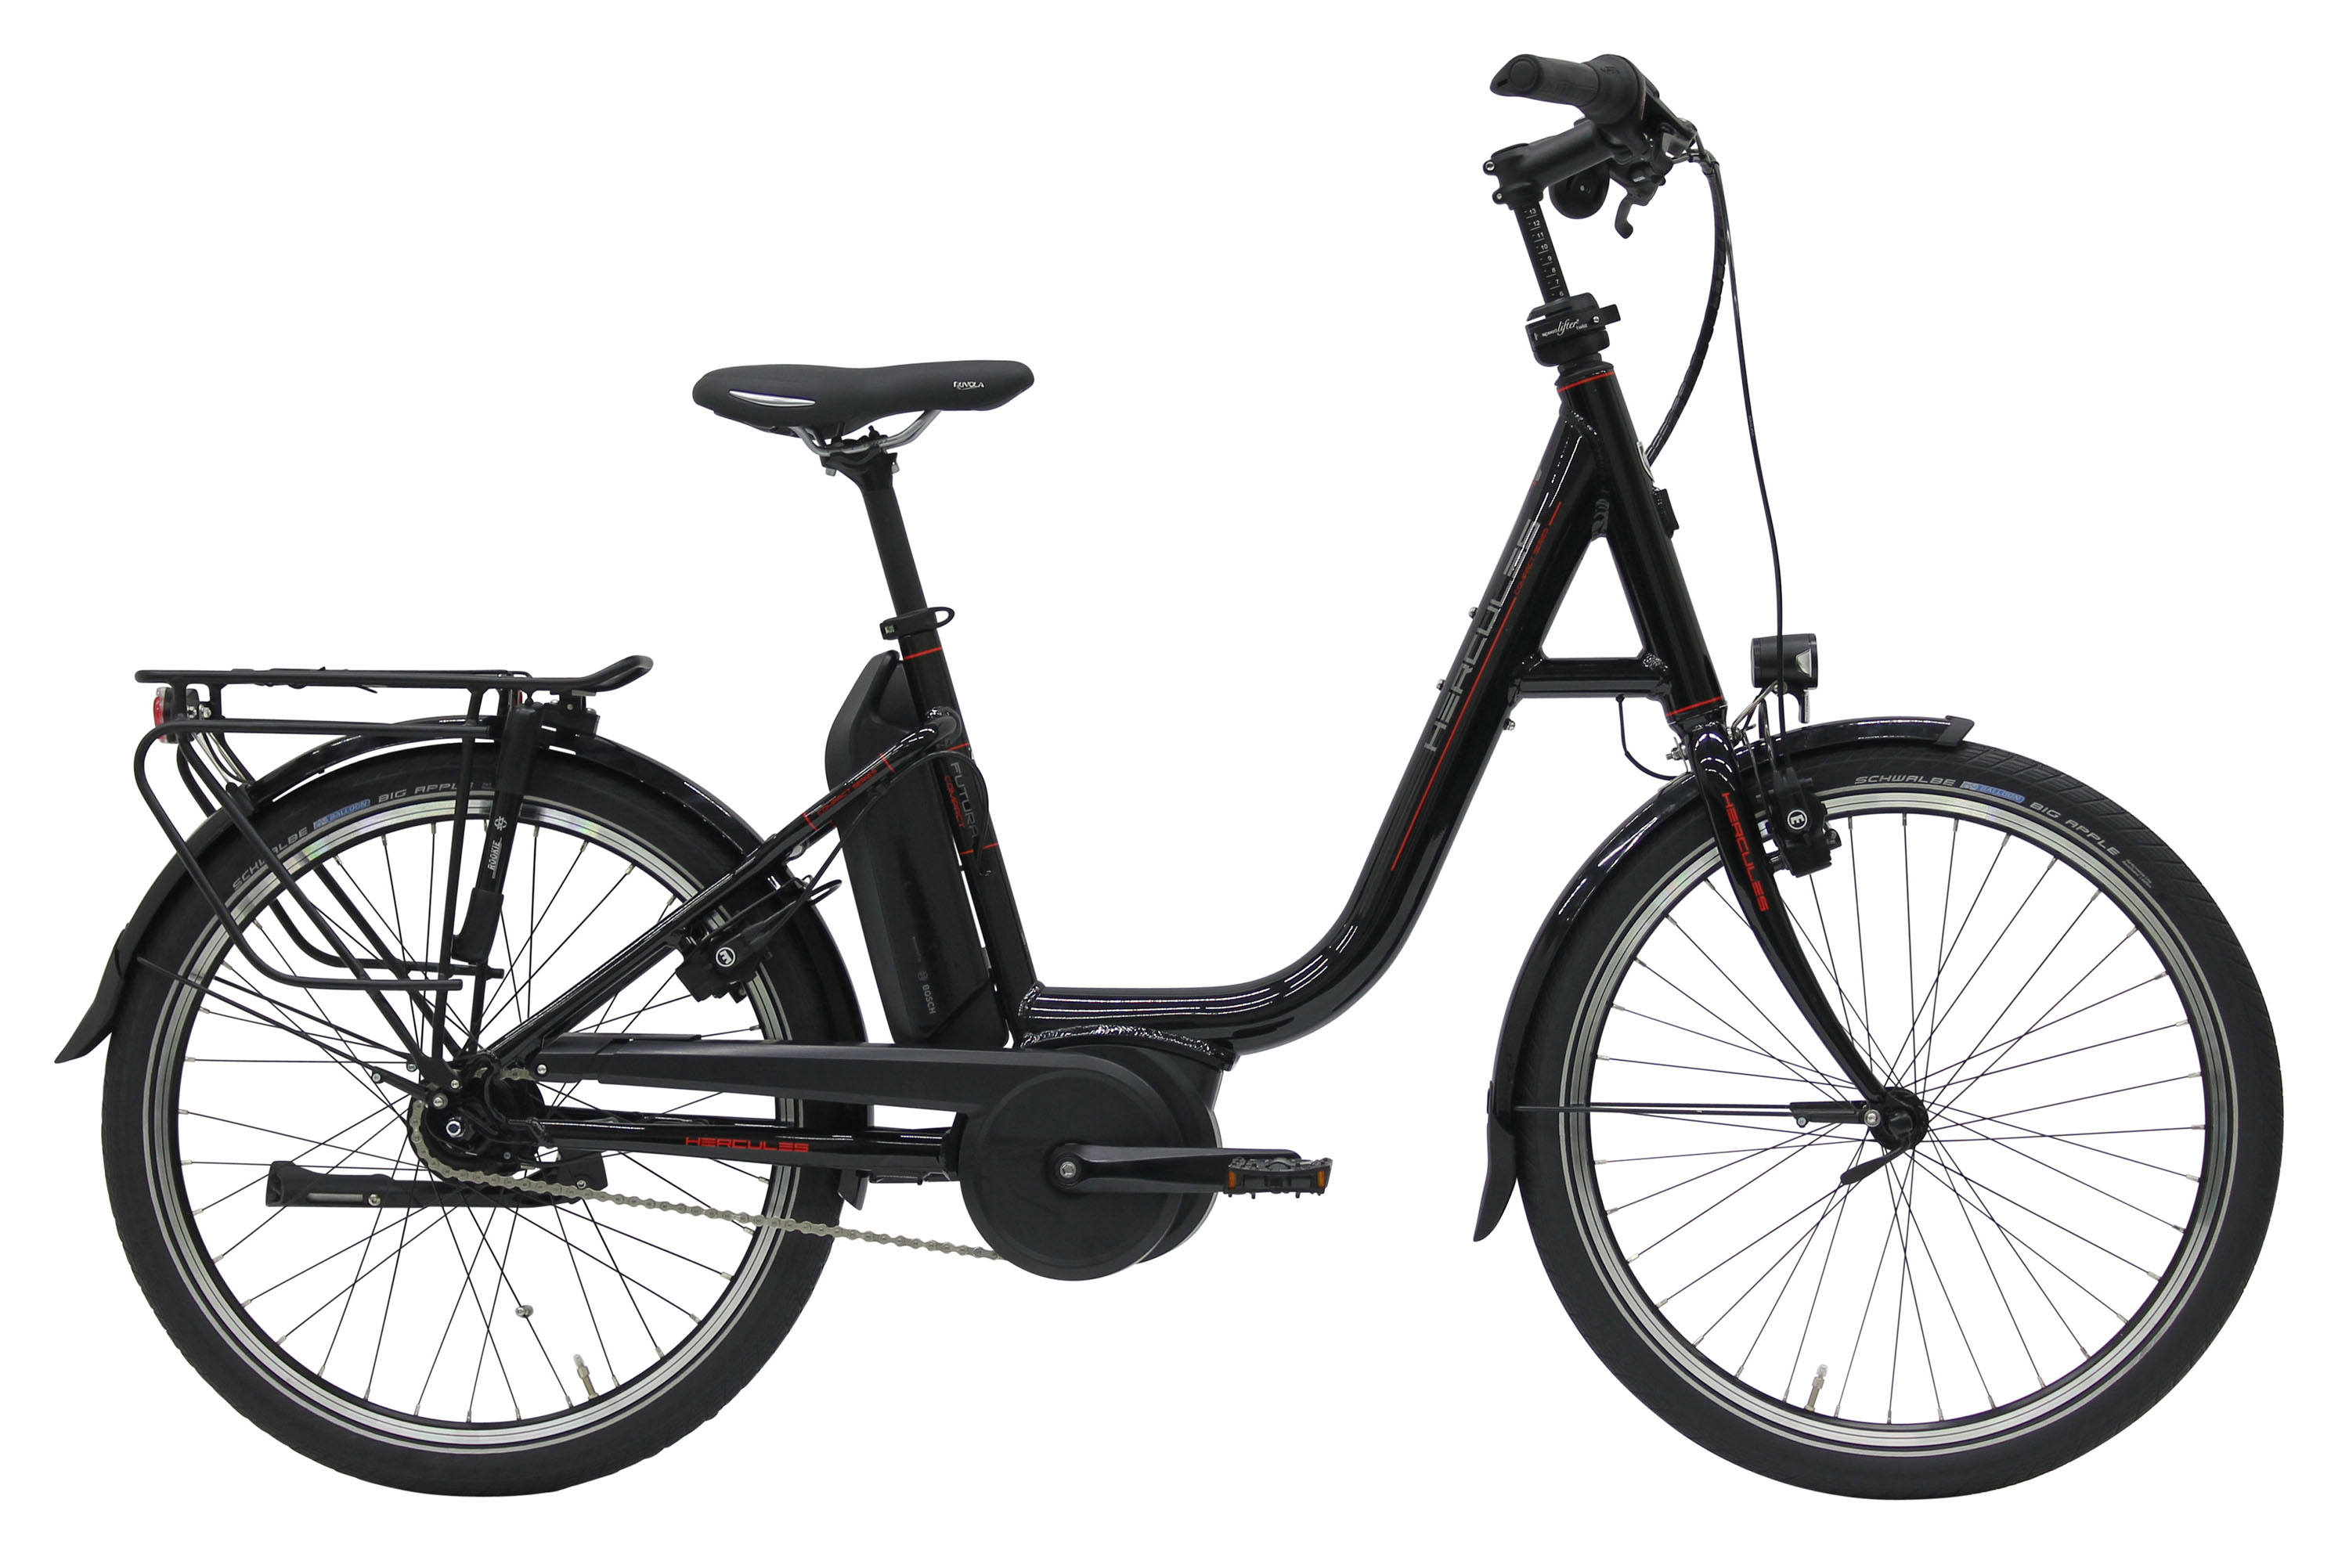 e bike geheimtipp hercules futura compact r8 modell 2019. Black Bedroom Furniture Sets. Home Design Ideas